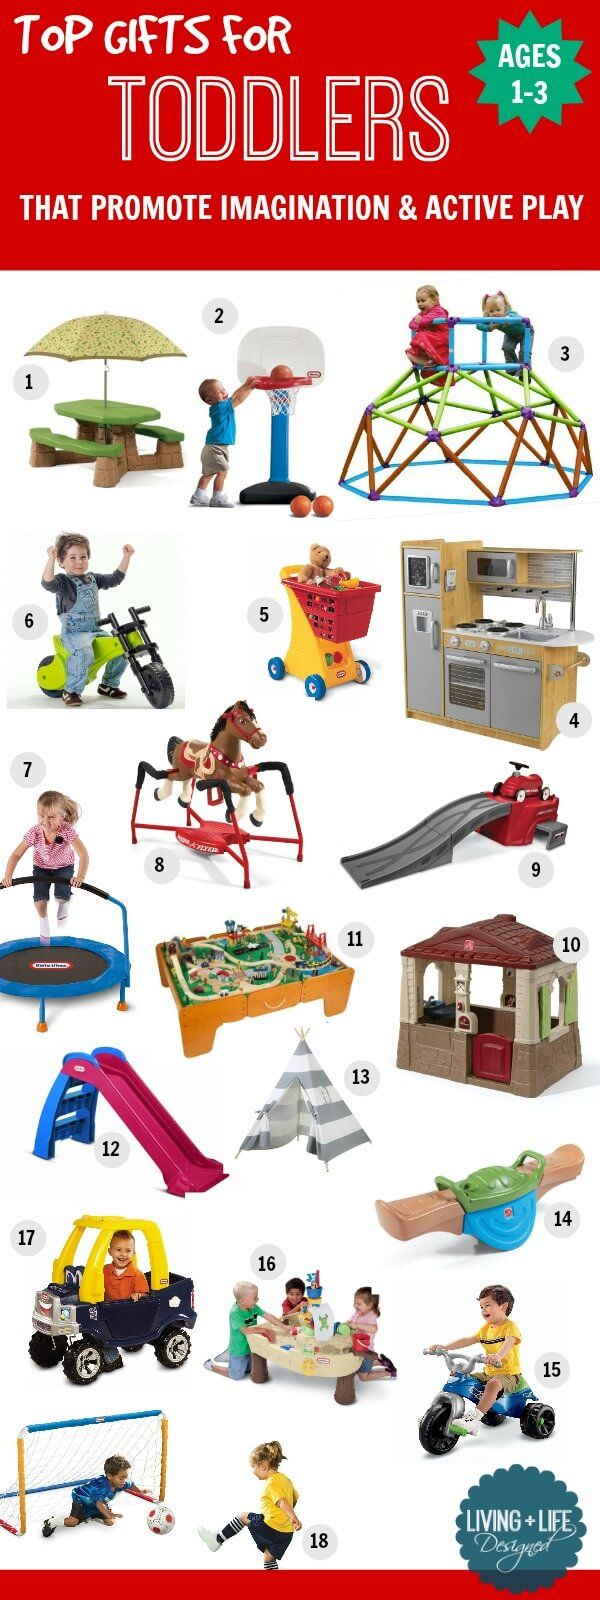 Best Toys For Age 3 : Best ideas about toddler gifts on pinterest page boy